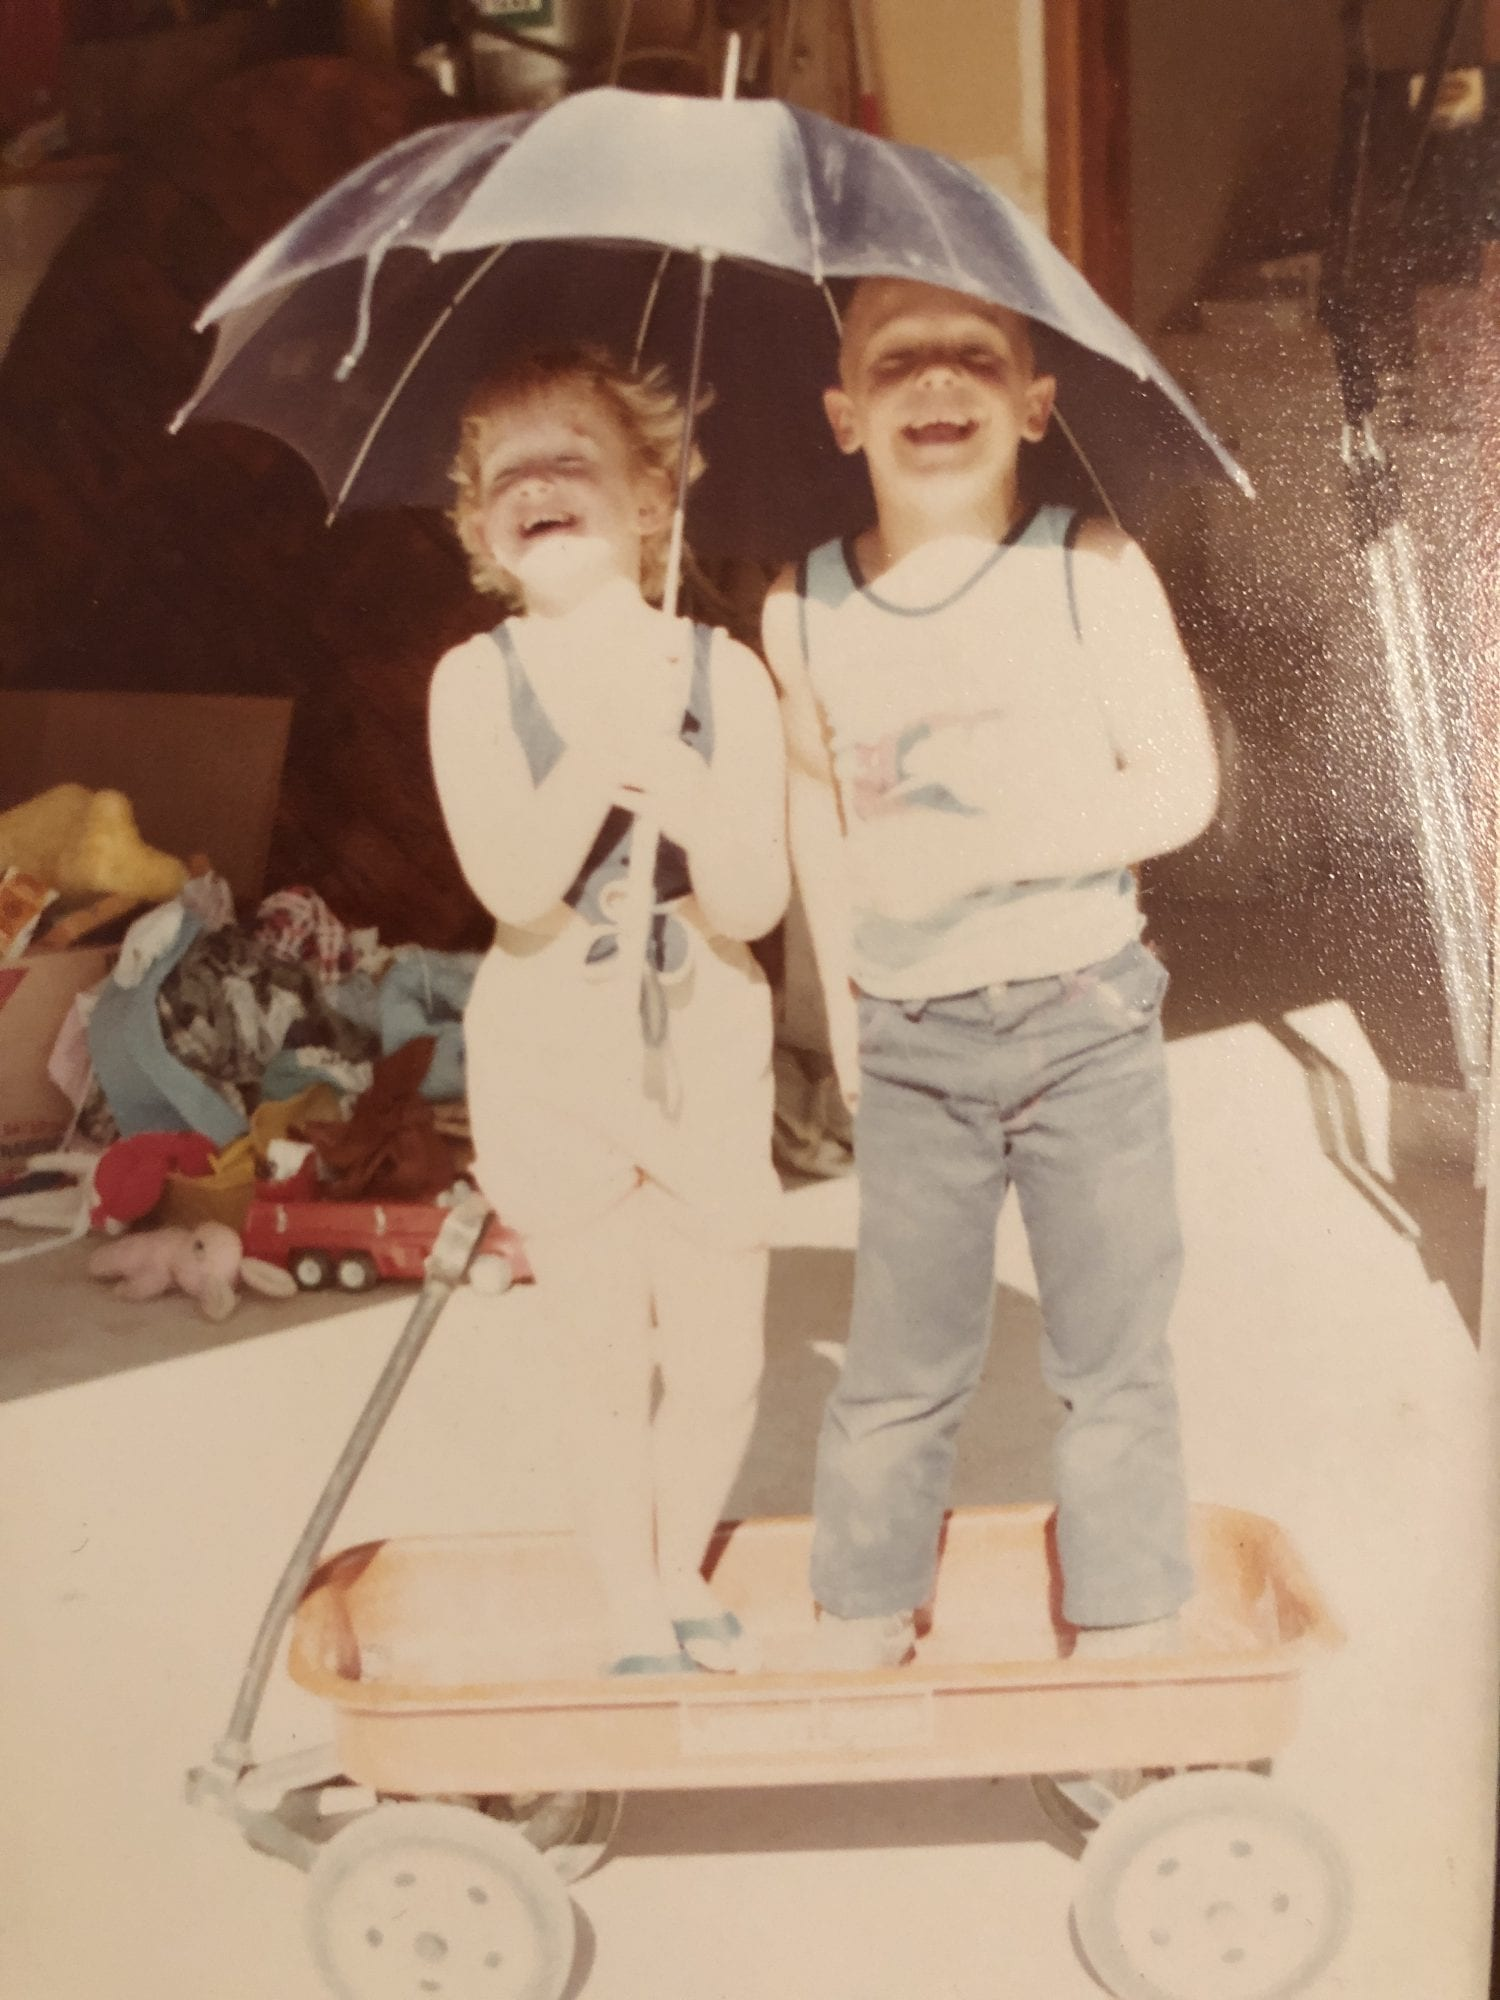 dana and meriah: a boy and a girl playing with an umbrella over them